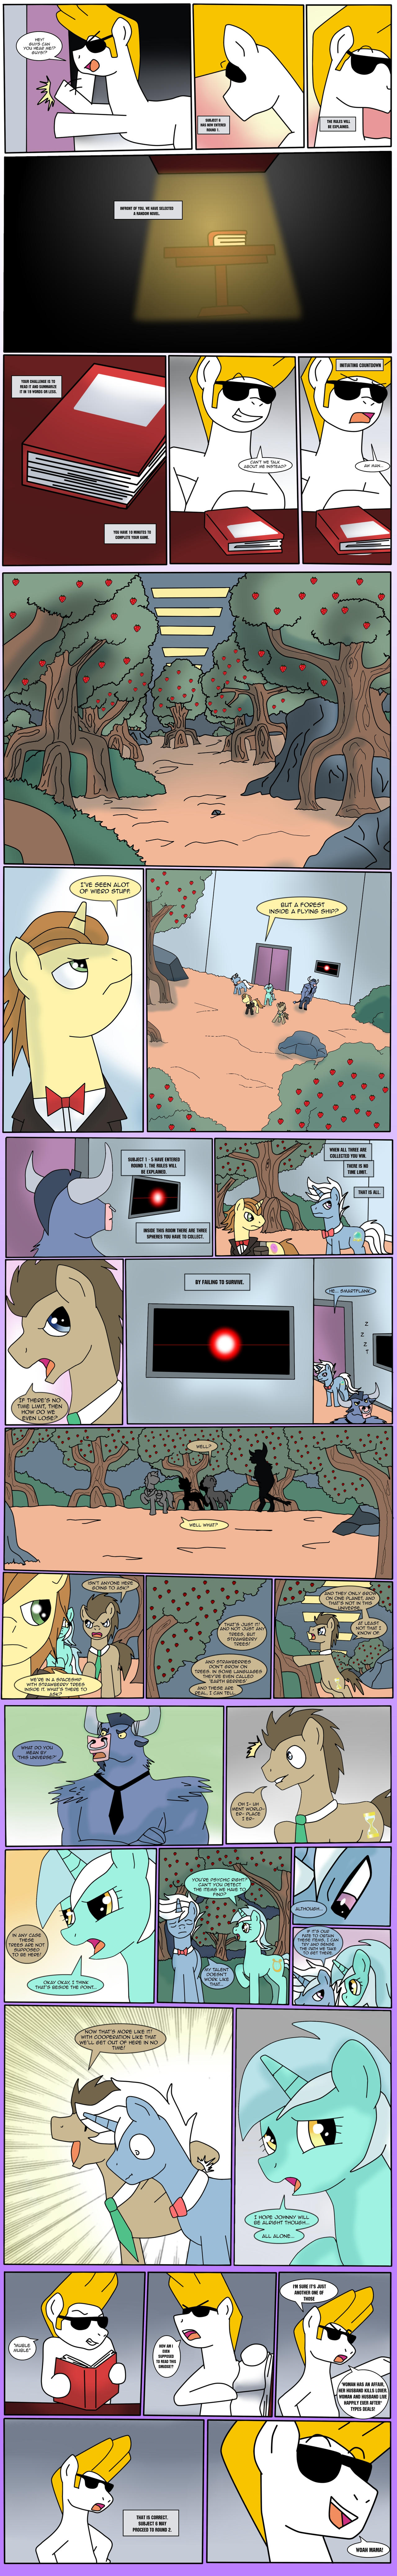 Doctor Whooves - The Games Pt 4